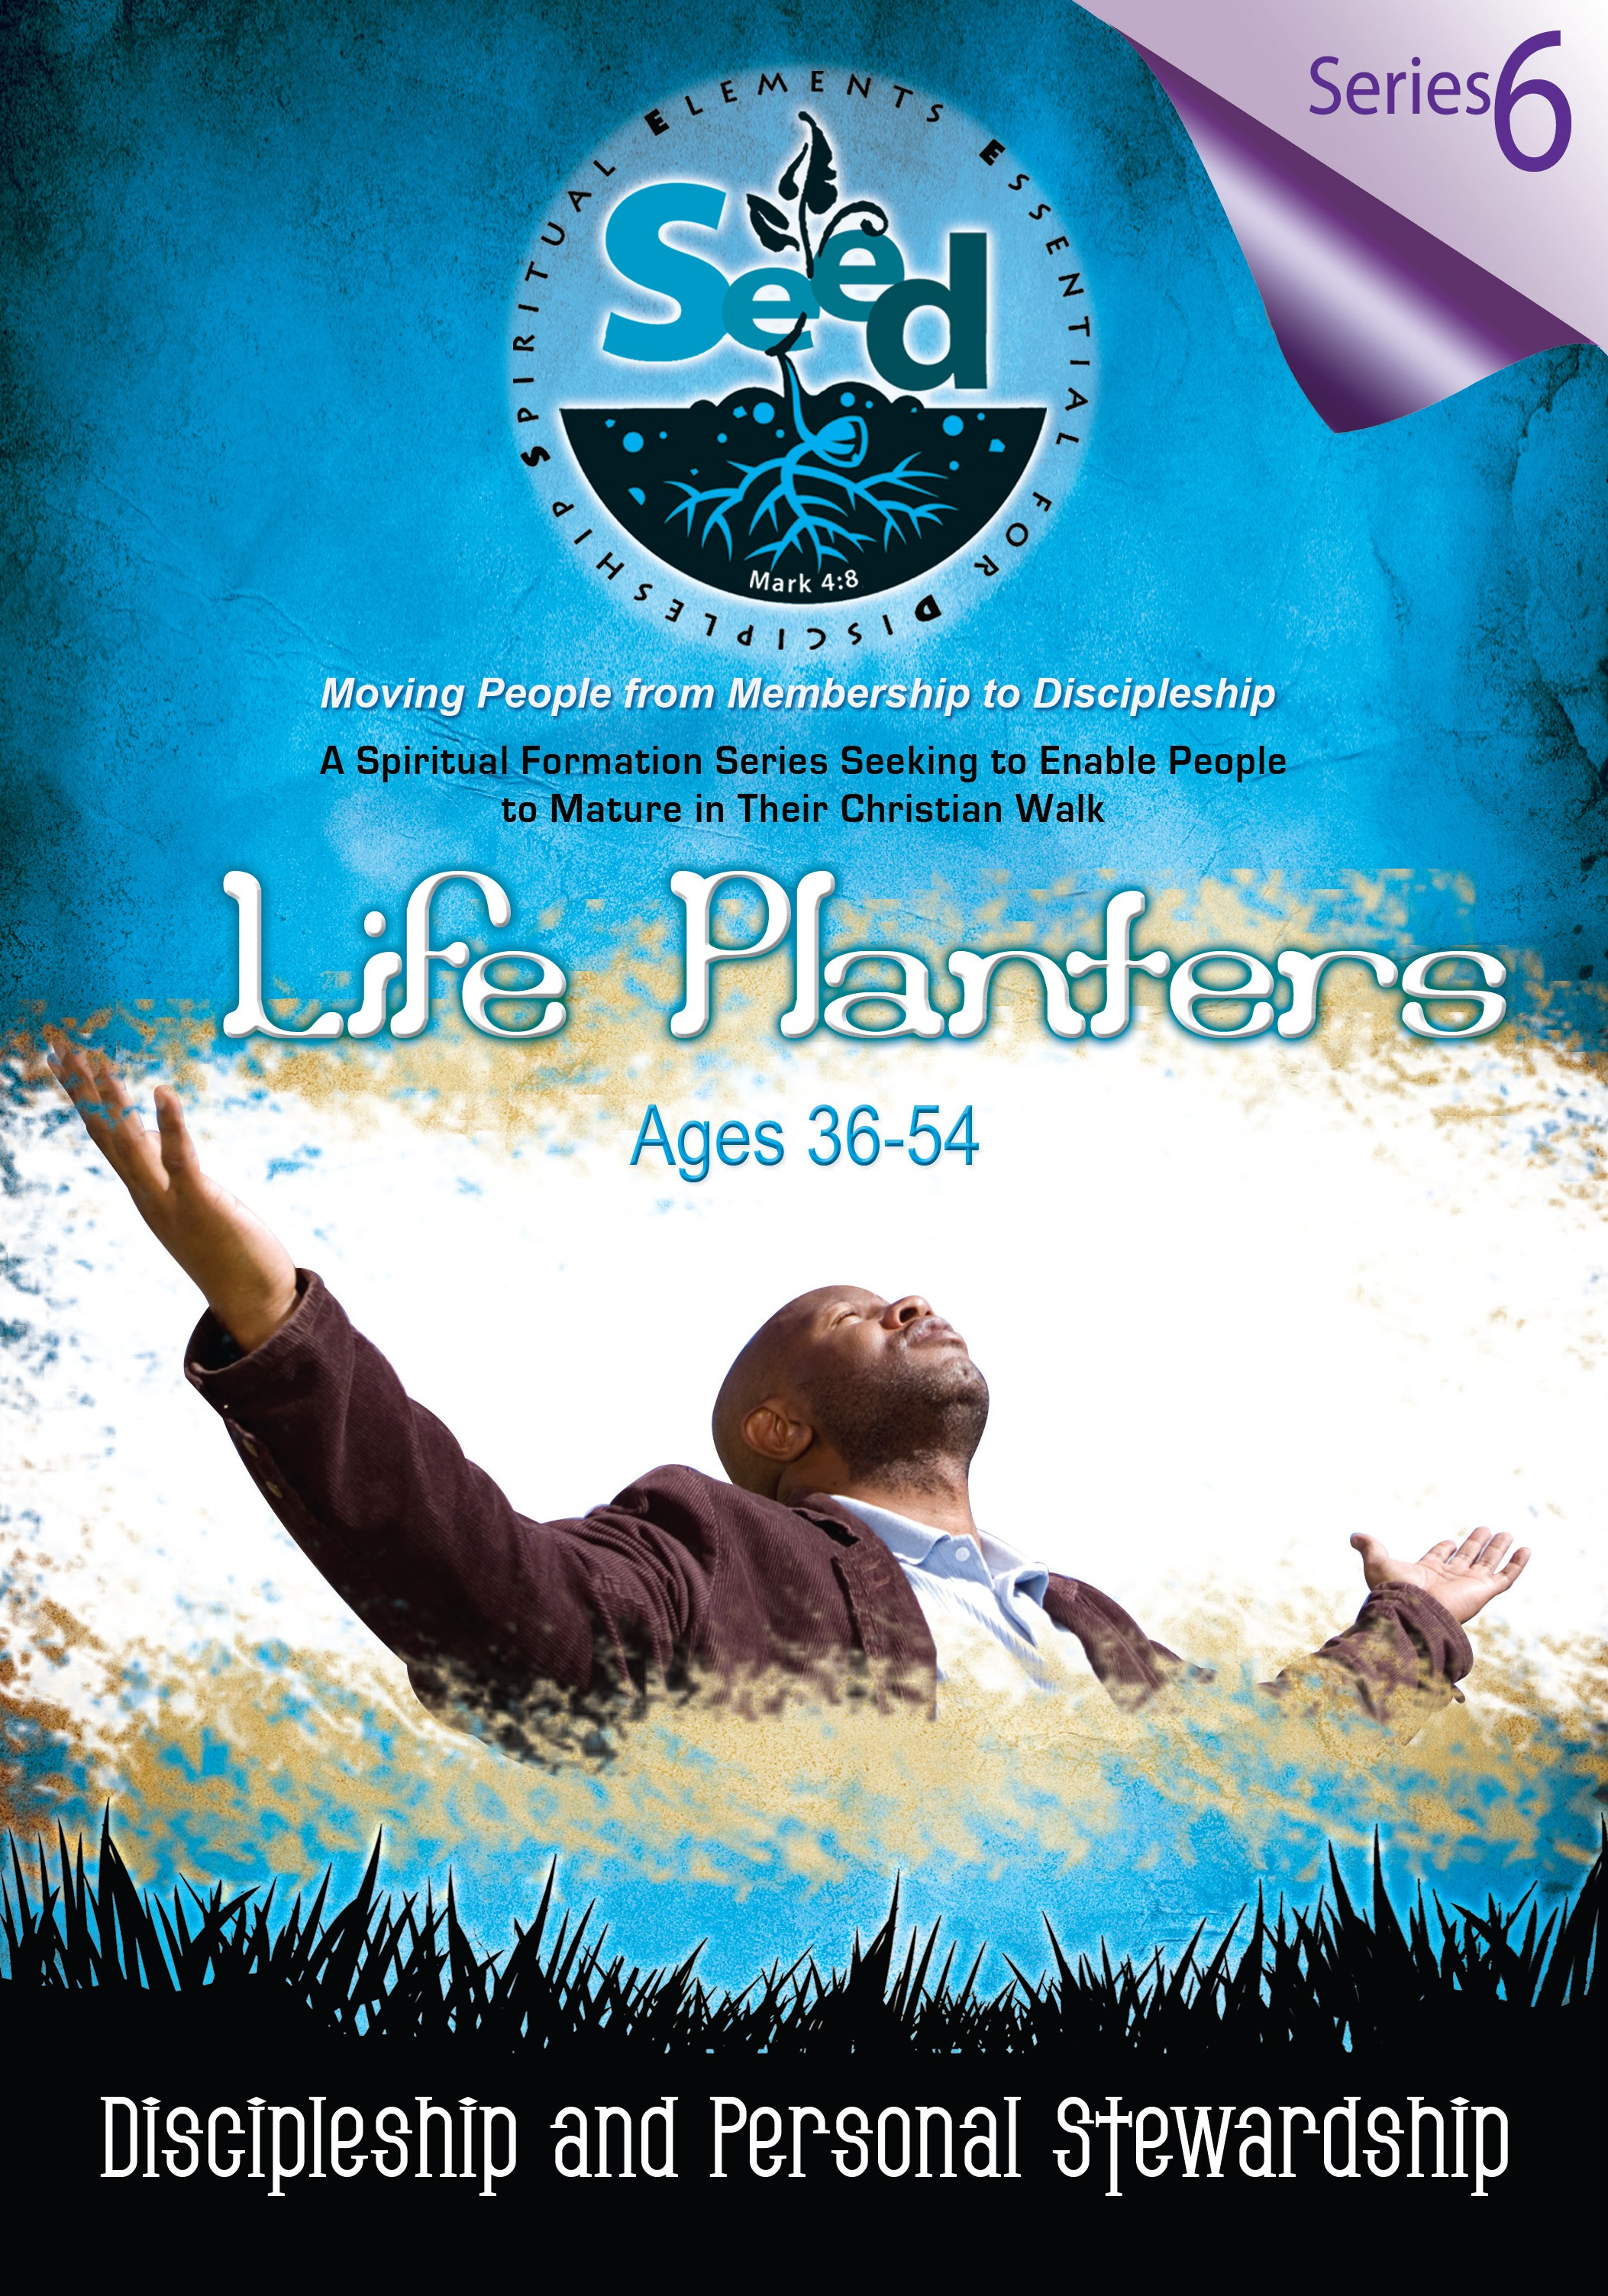 SEED Life Planters (Ages 36-54): Series 6: Discipleship and Personal Stewardship